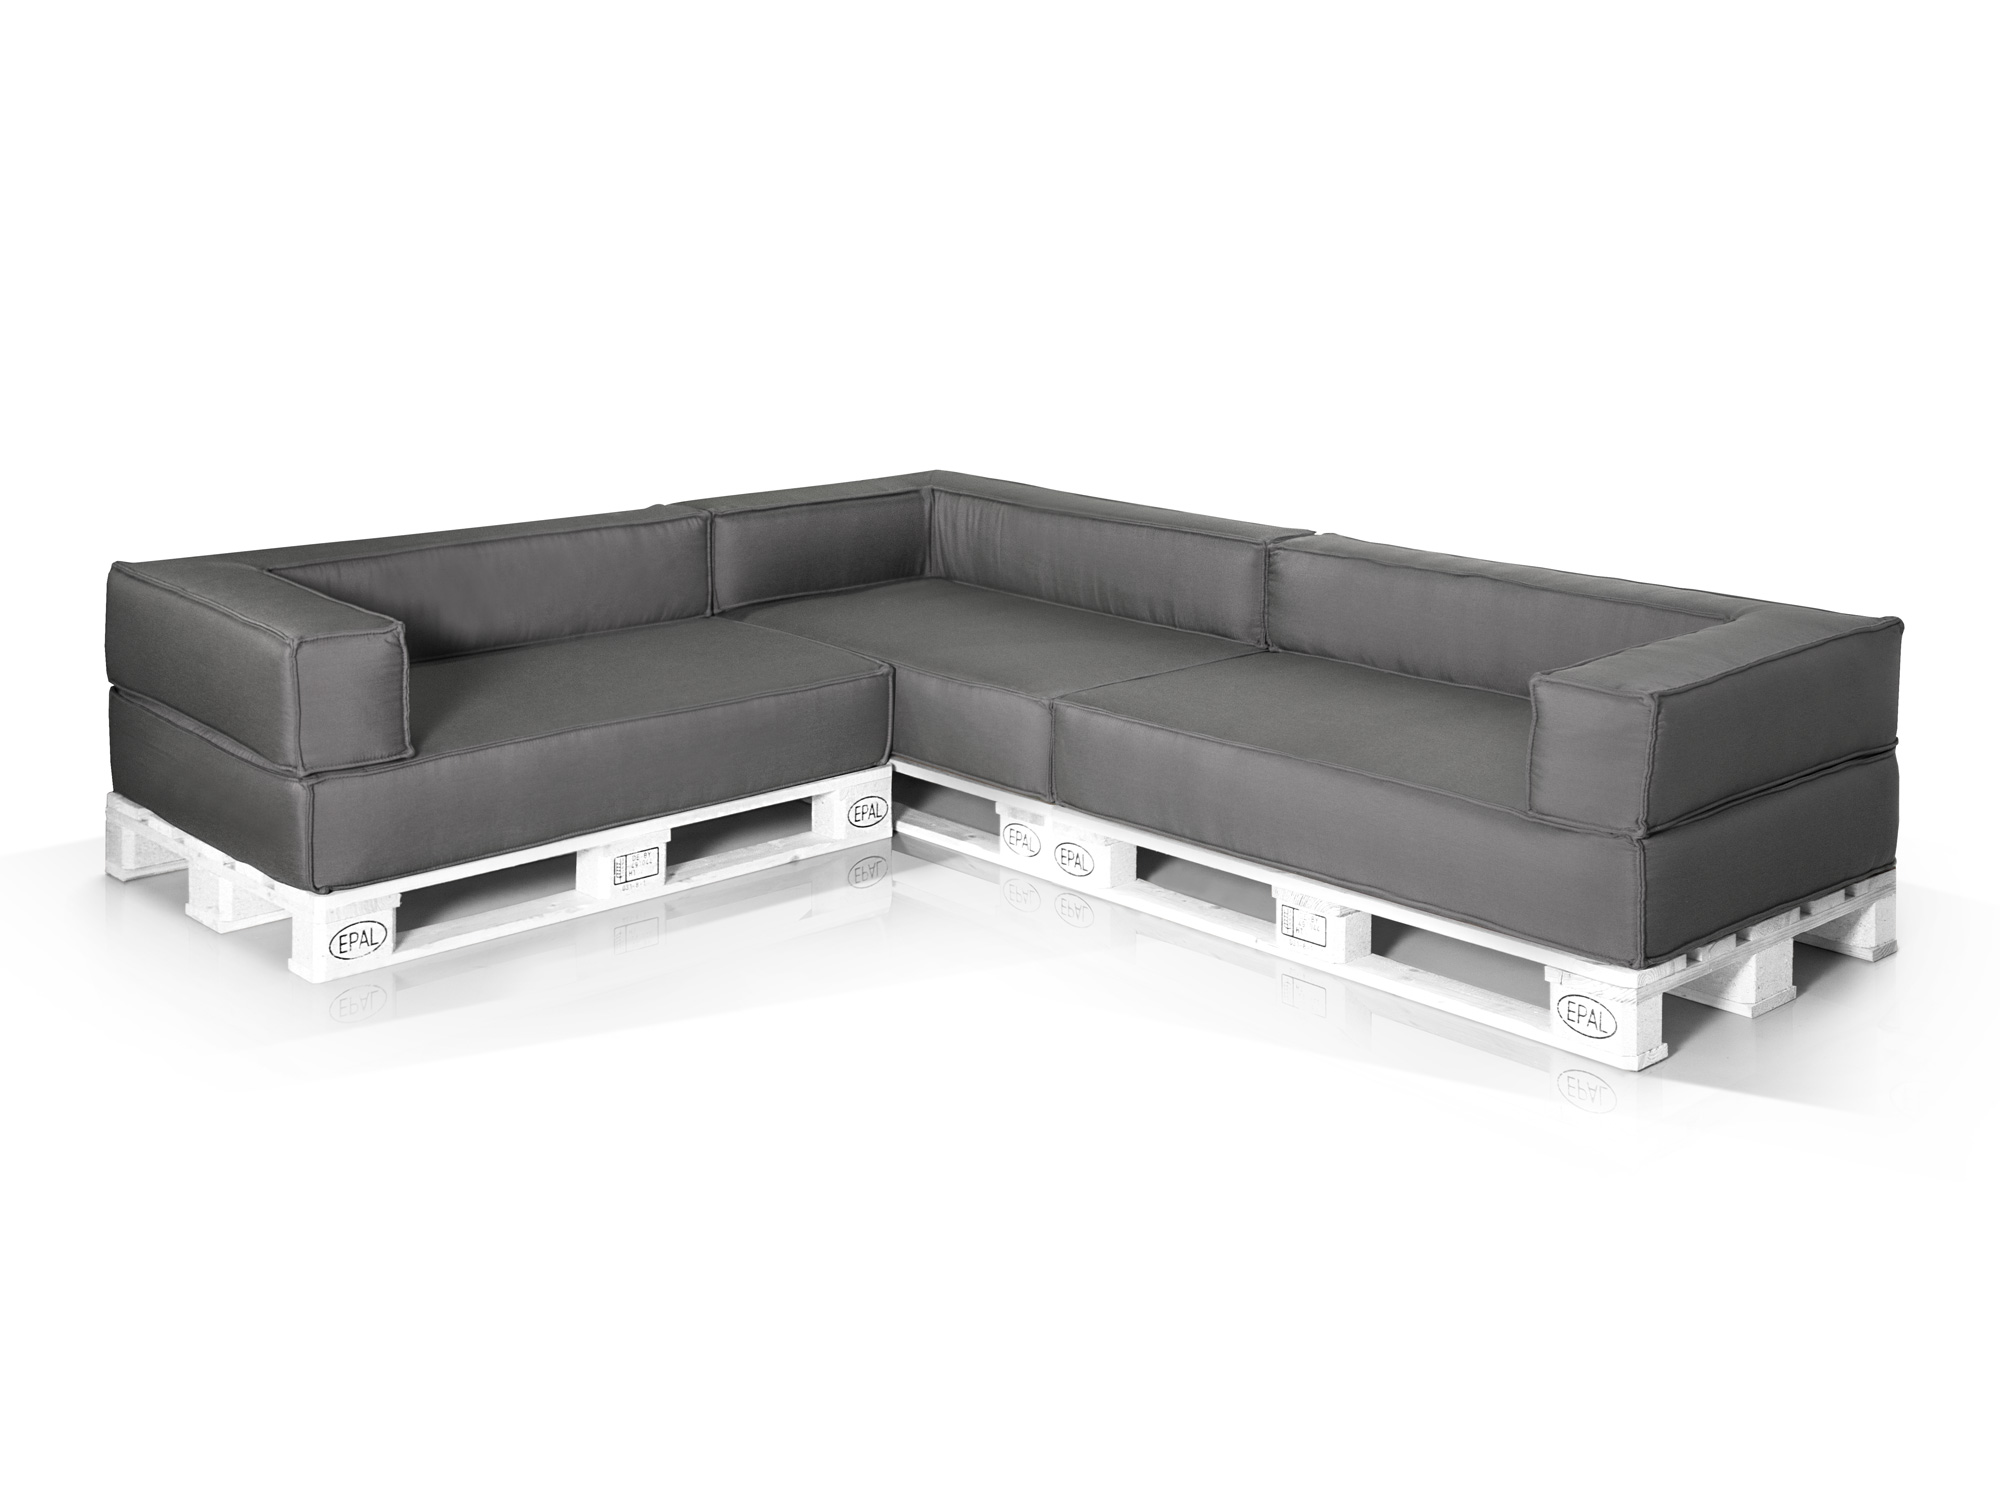 outdoor paletti ecksofa europaletten weiss mit wasserfesten polstern. Black Bedroom Furniture Sets. Home Design Ideas